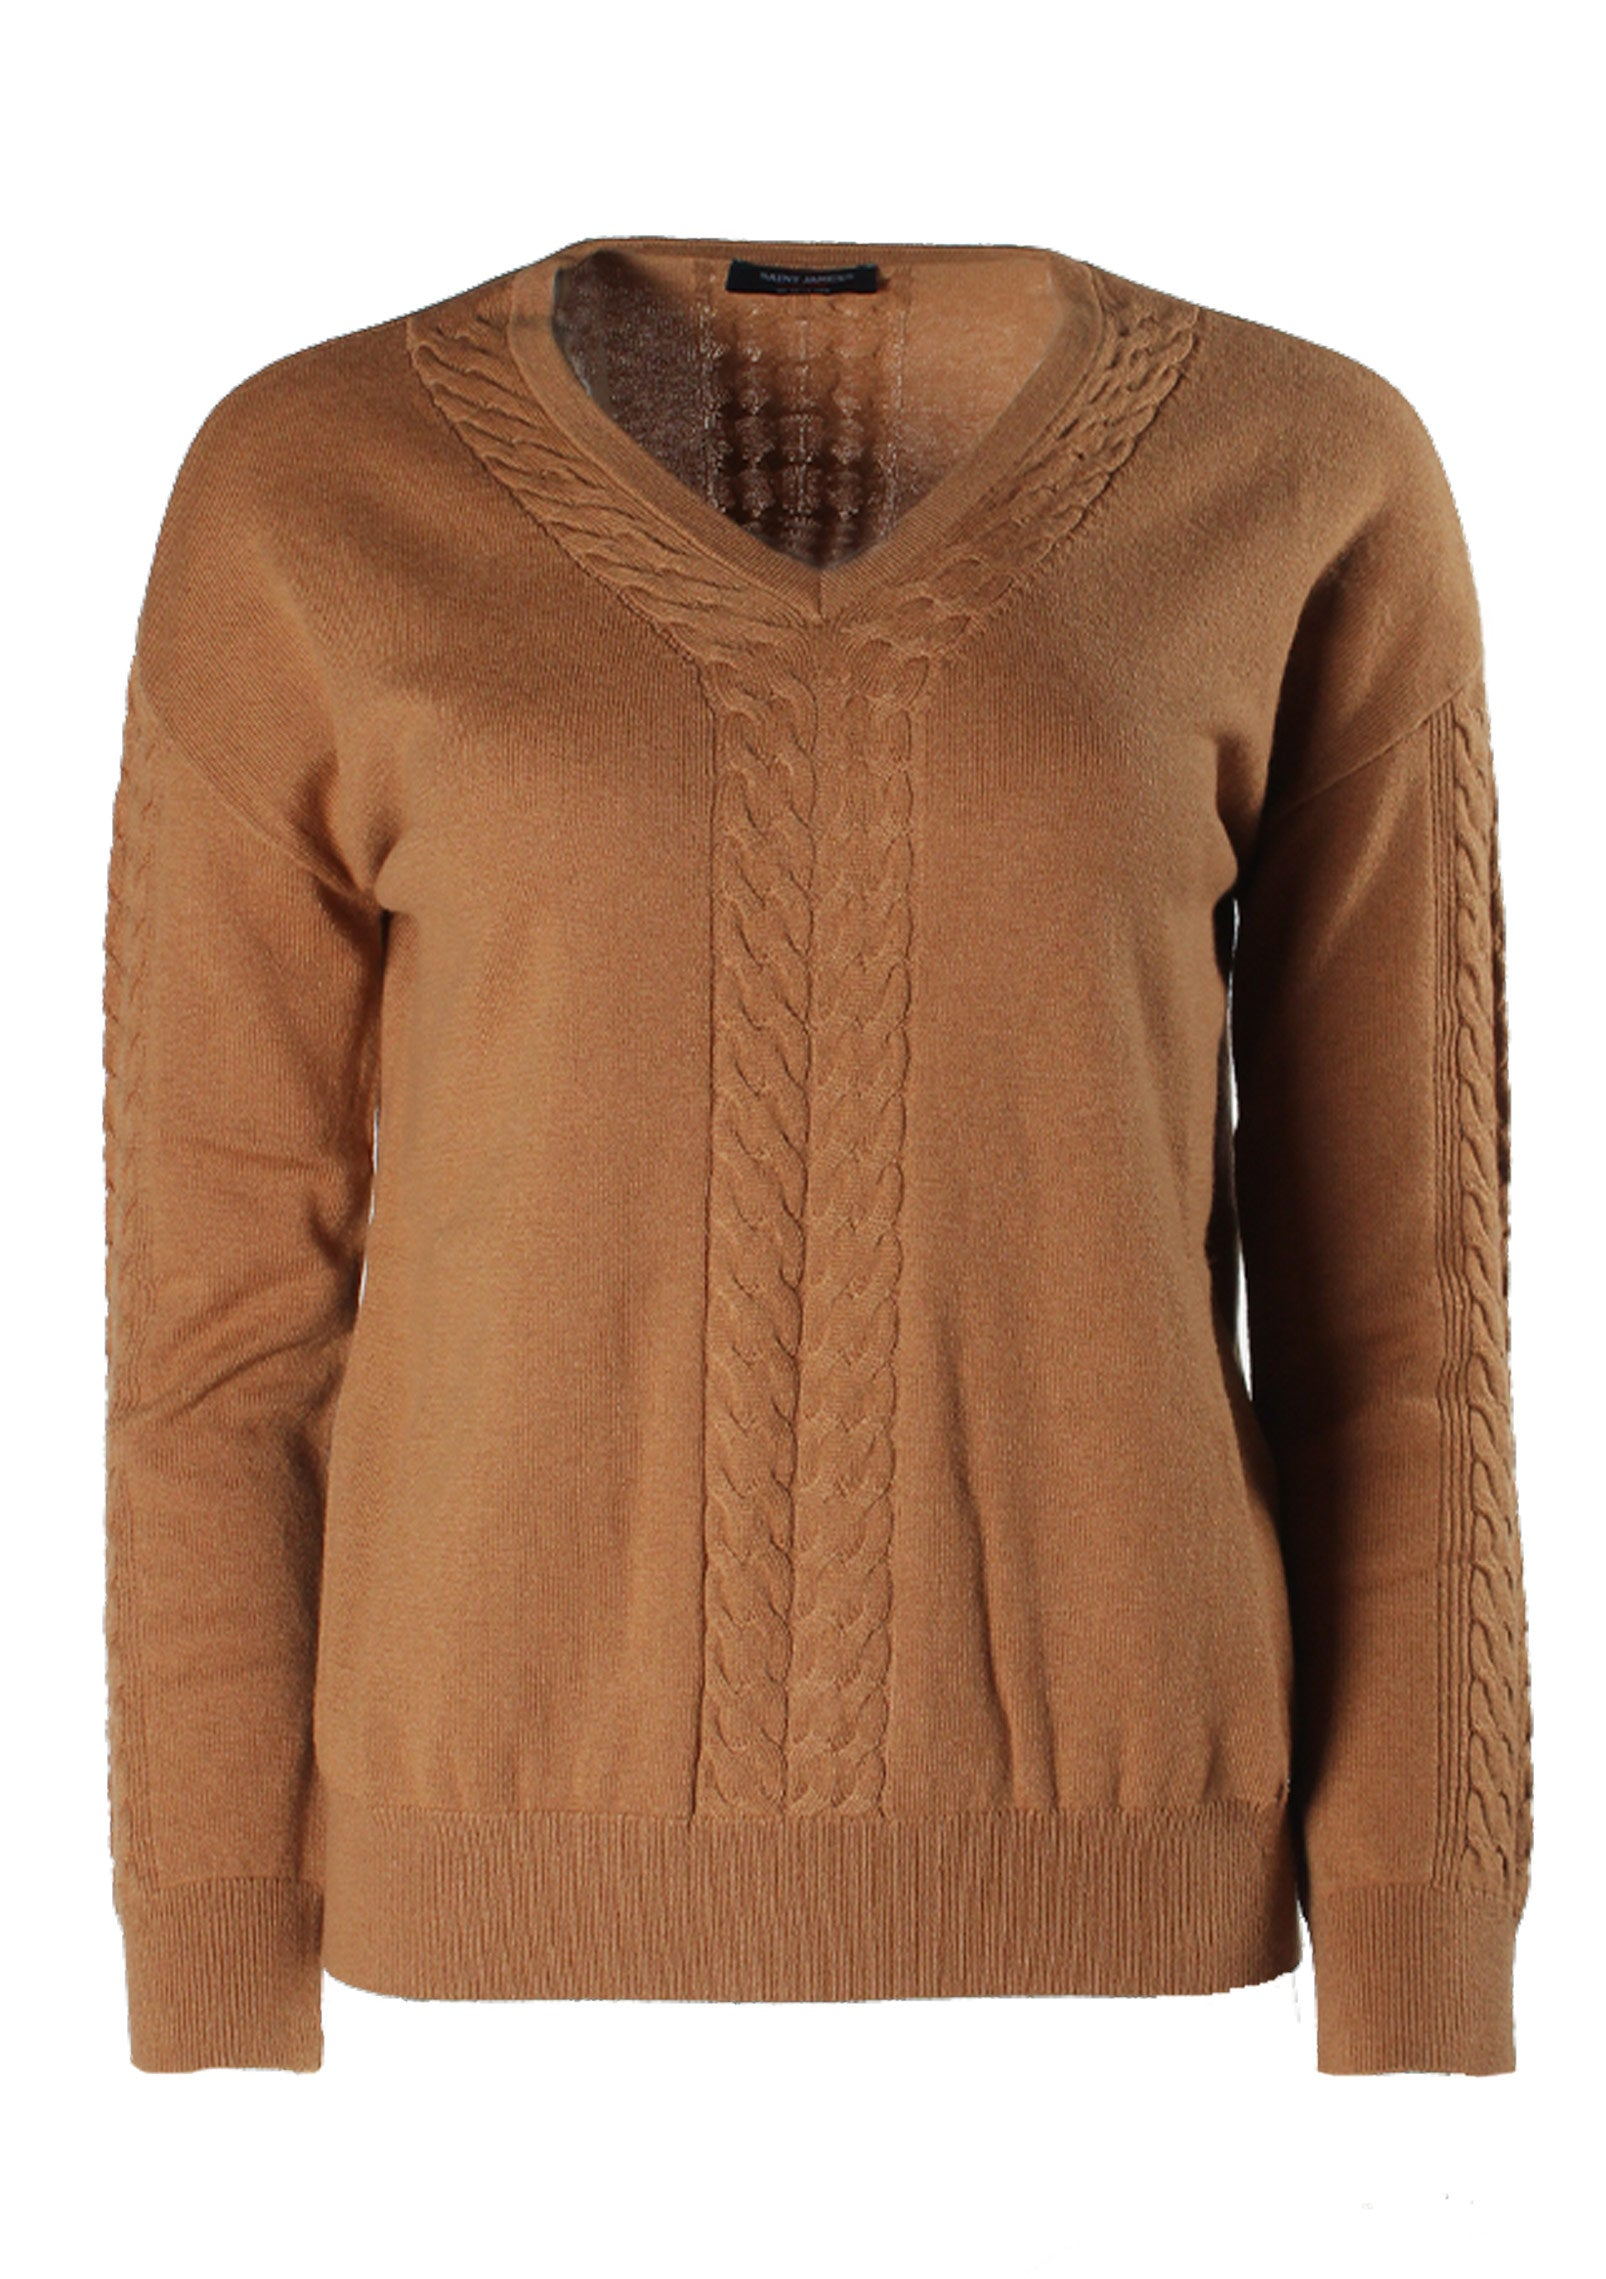 Saint James Mallow Sweater